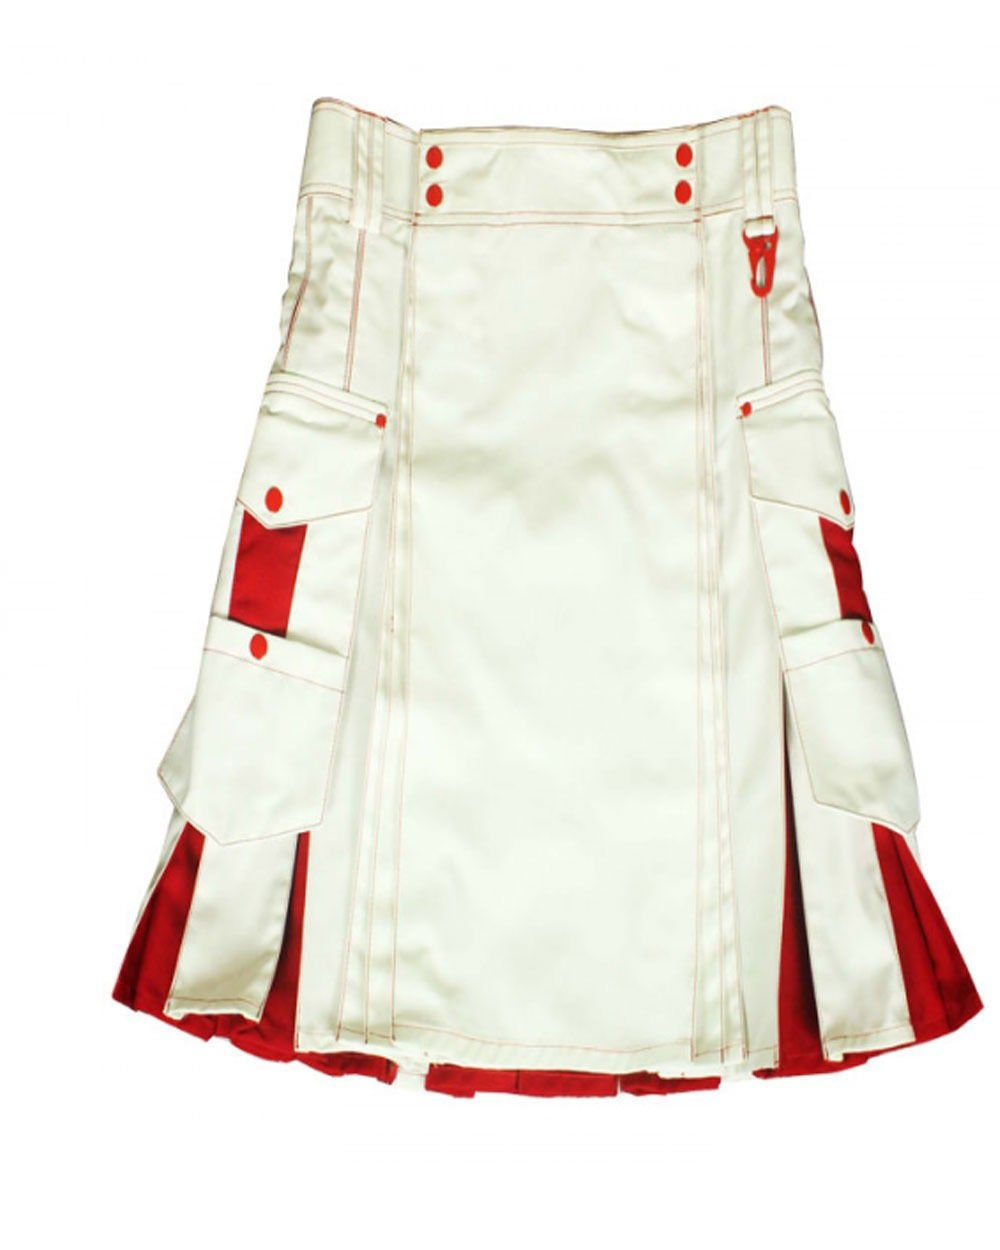 34 Size Handmade White & Red Cotton Kilt for Active Men, Hybrid Cotton Utility Deluxe Kilt